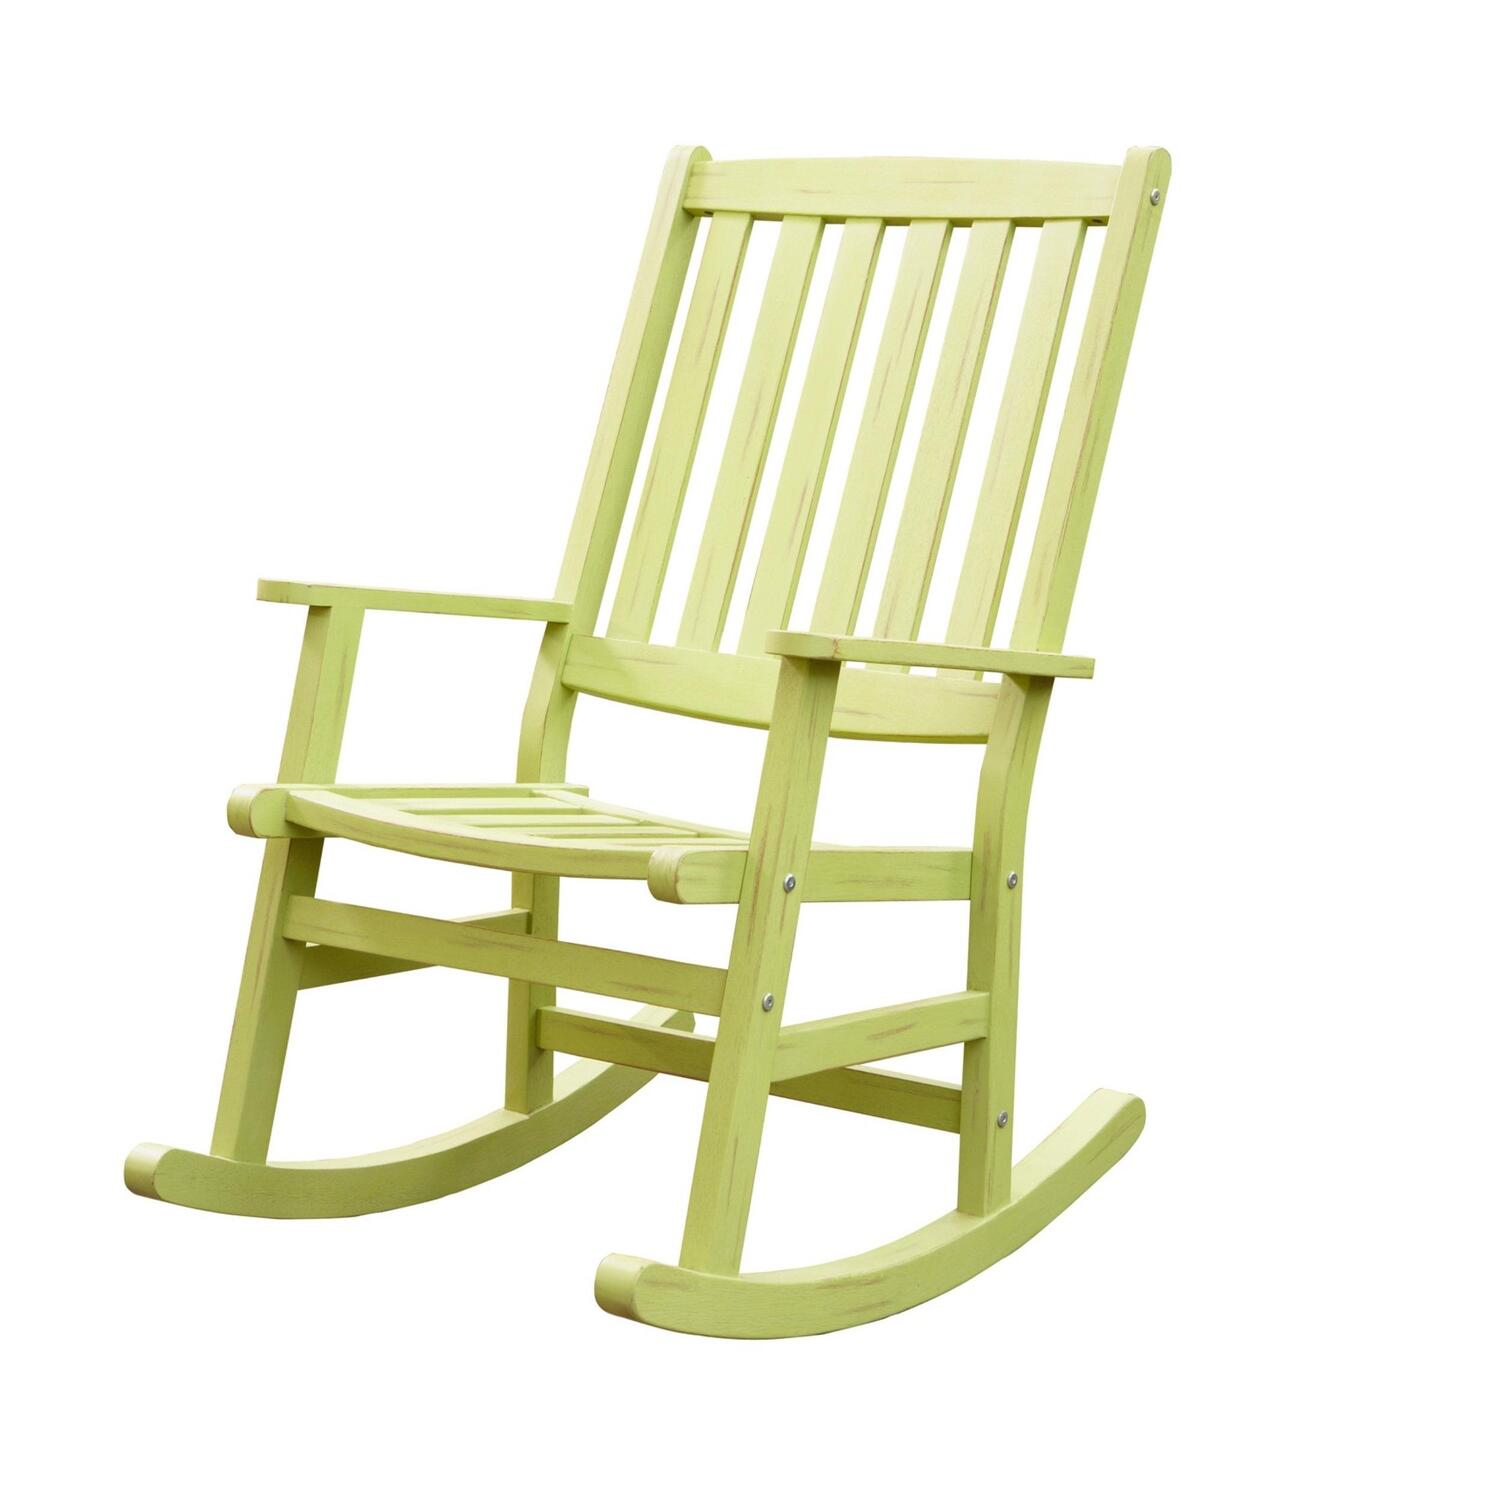 cracker barrel rocking chair reviews seat covers bed bath and beyond bali hai outdoor from 231 99 to 253